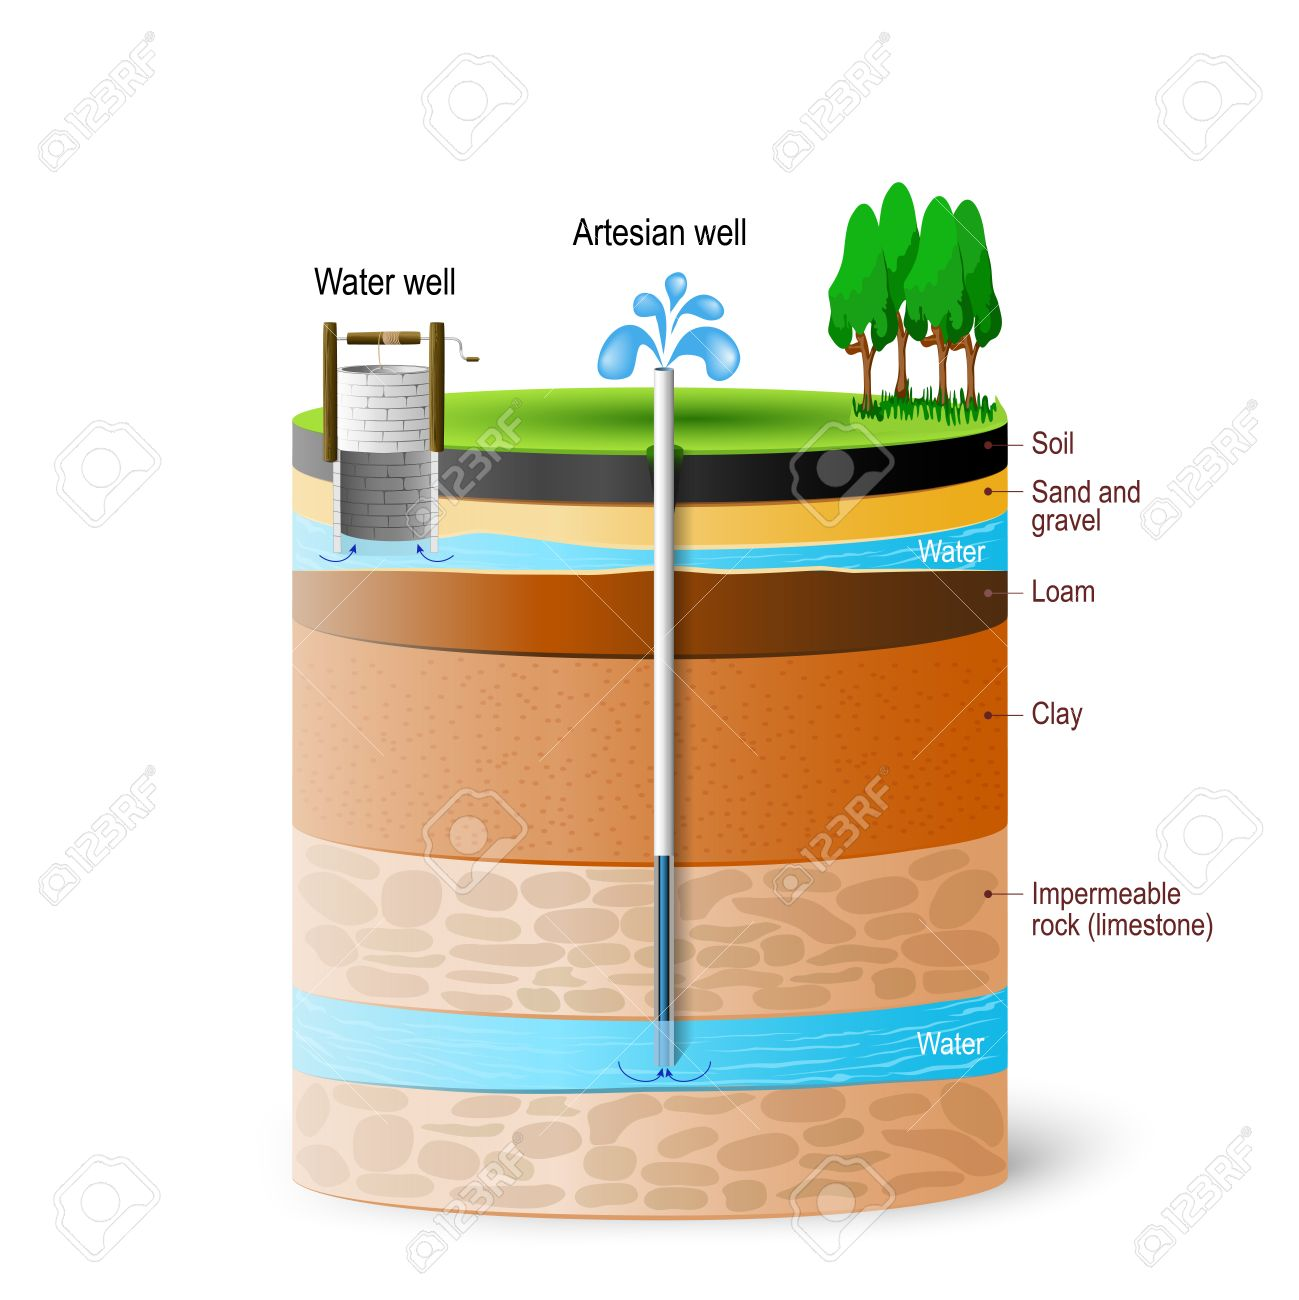 Artesian water and Groundwater. Schematic of an artesian well... on